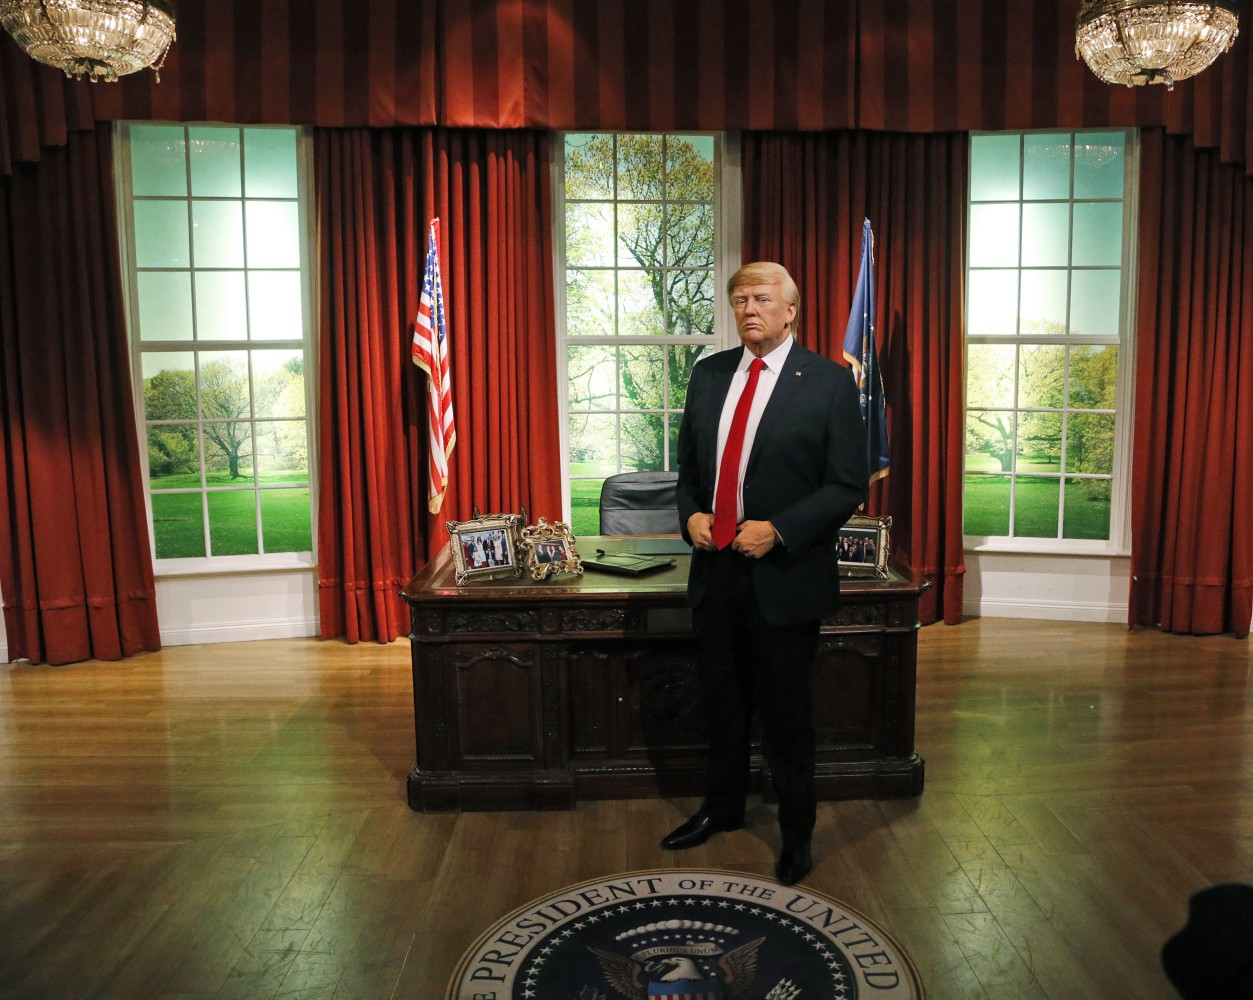 Trump Oval Office Pictures Wax Donald Trump Moves Into Oval Office At Madame Tussauds